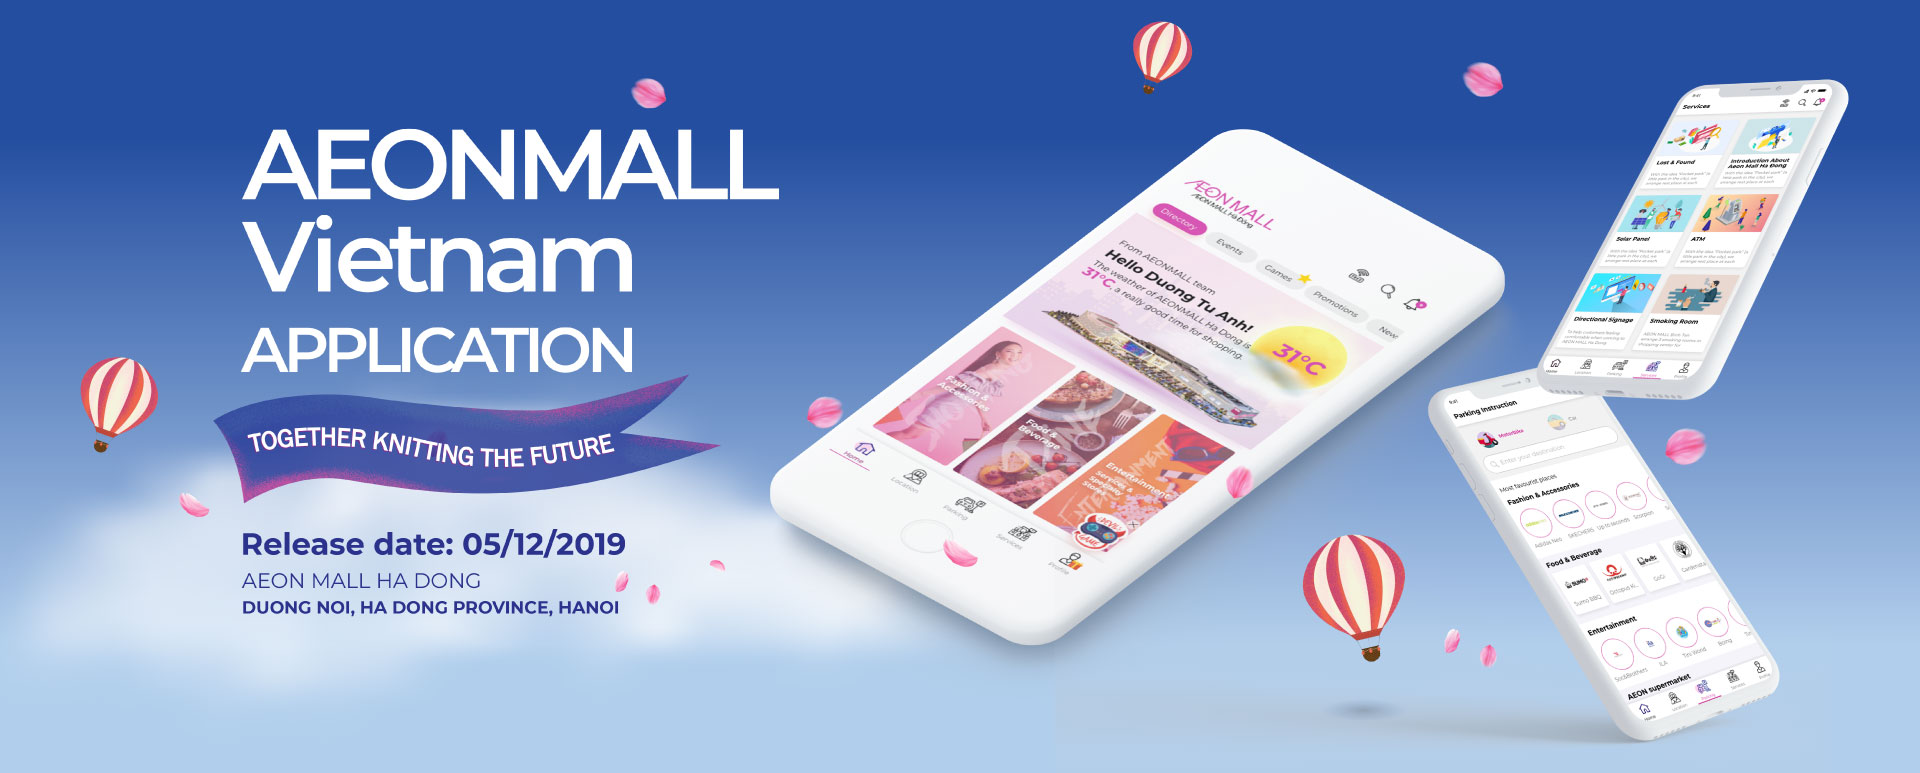 AEONMALL APP – A MORE STRESS-FREE EXPERIENCE IN A MALL